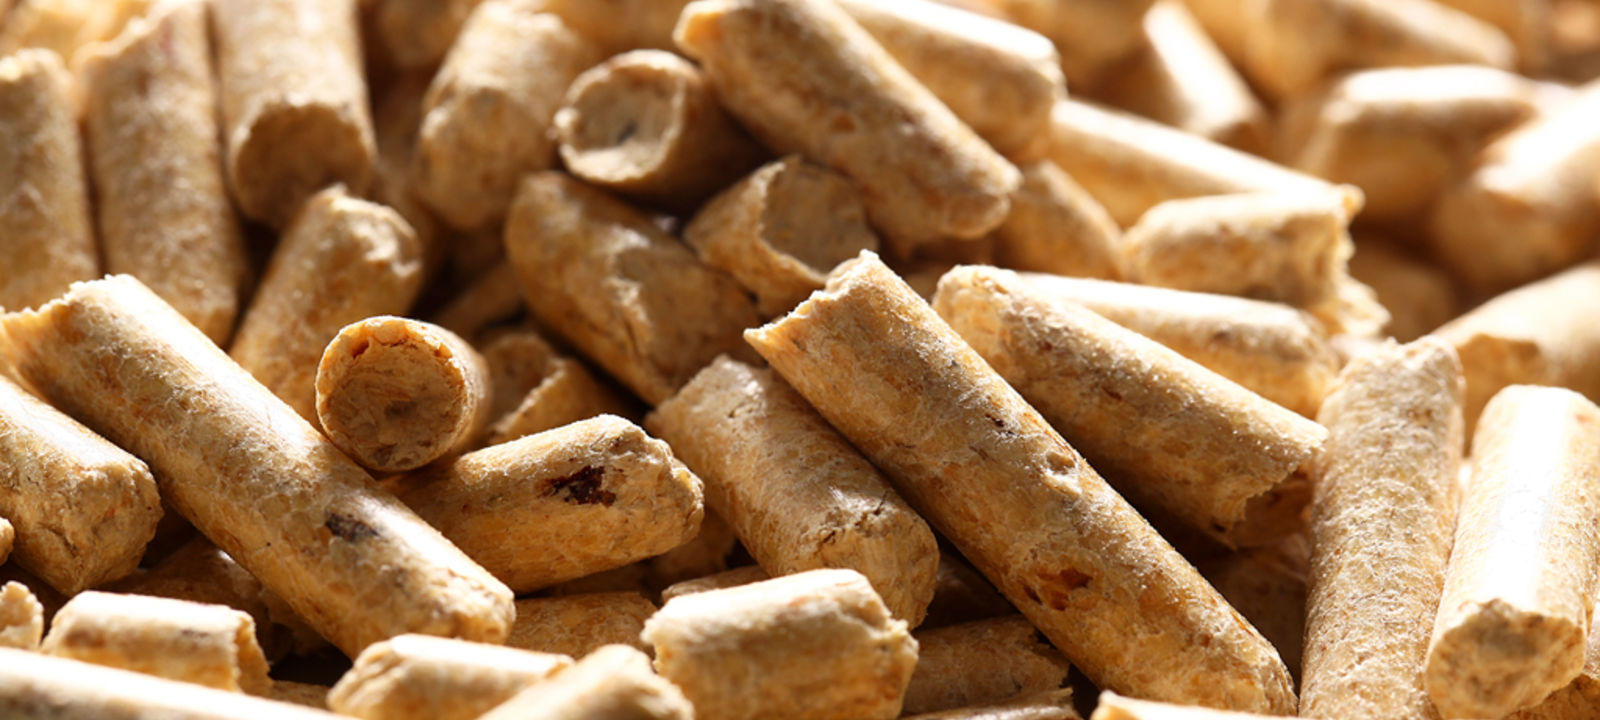 Holzpellets_Hotts